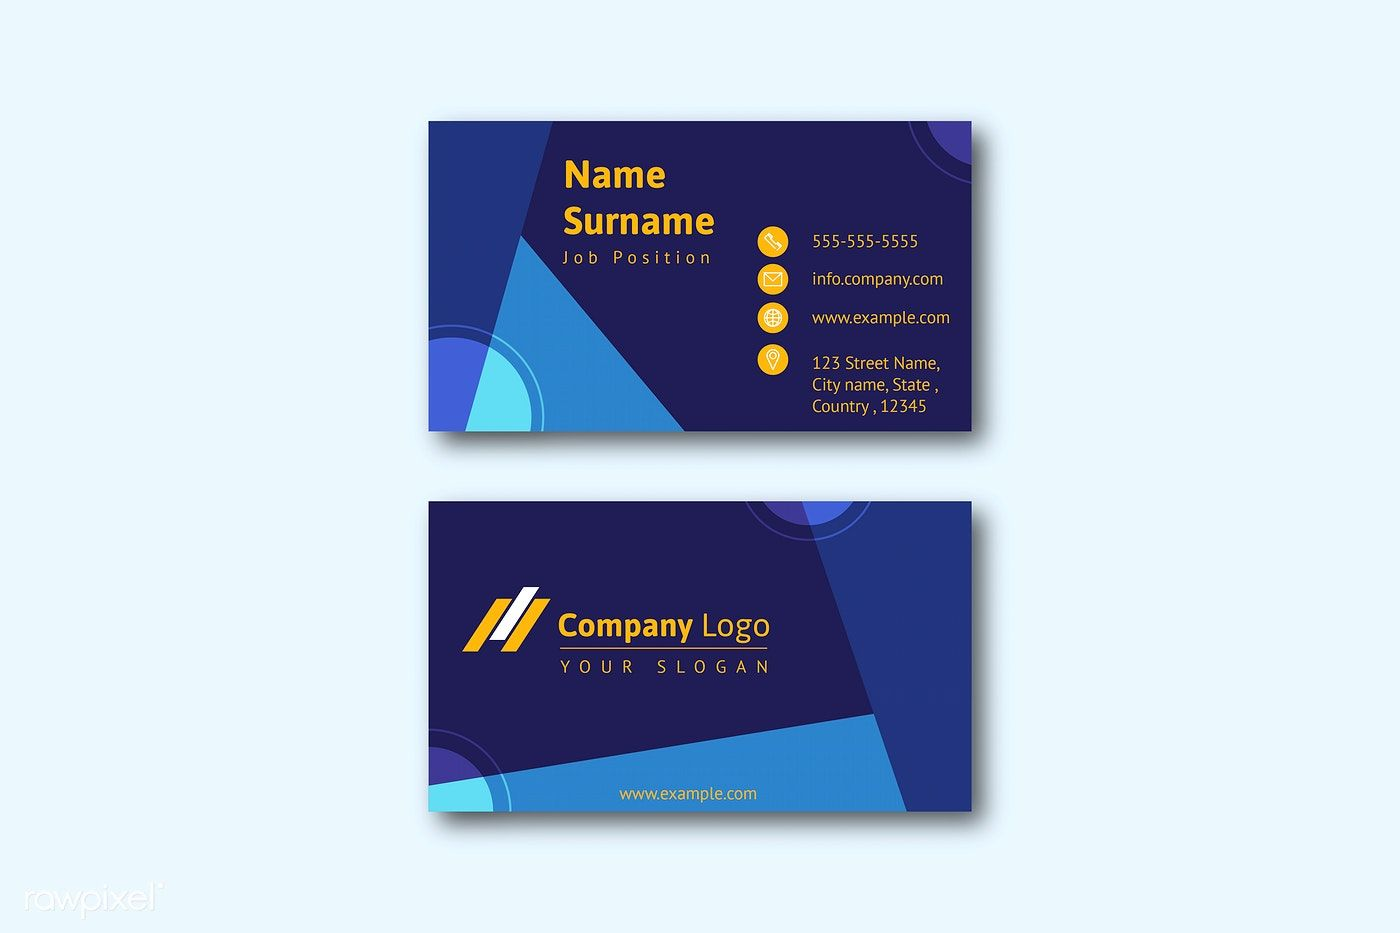 Business Card Template Front And Back Vector Free Image By Rawpixel Com Business Card Template Vector Free Cards